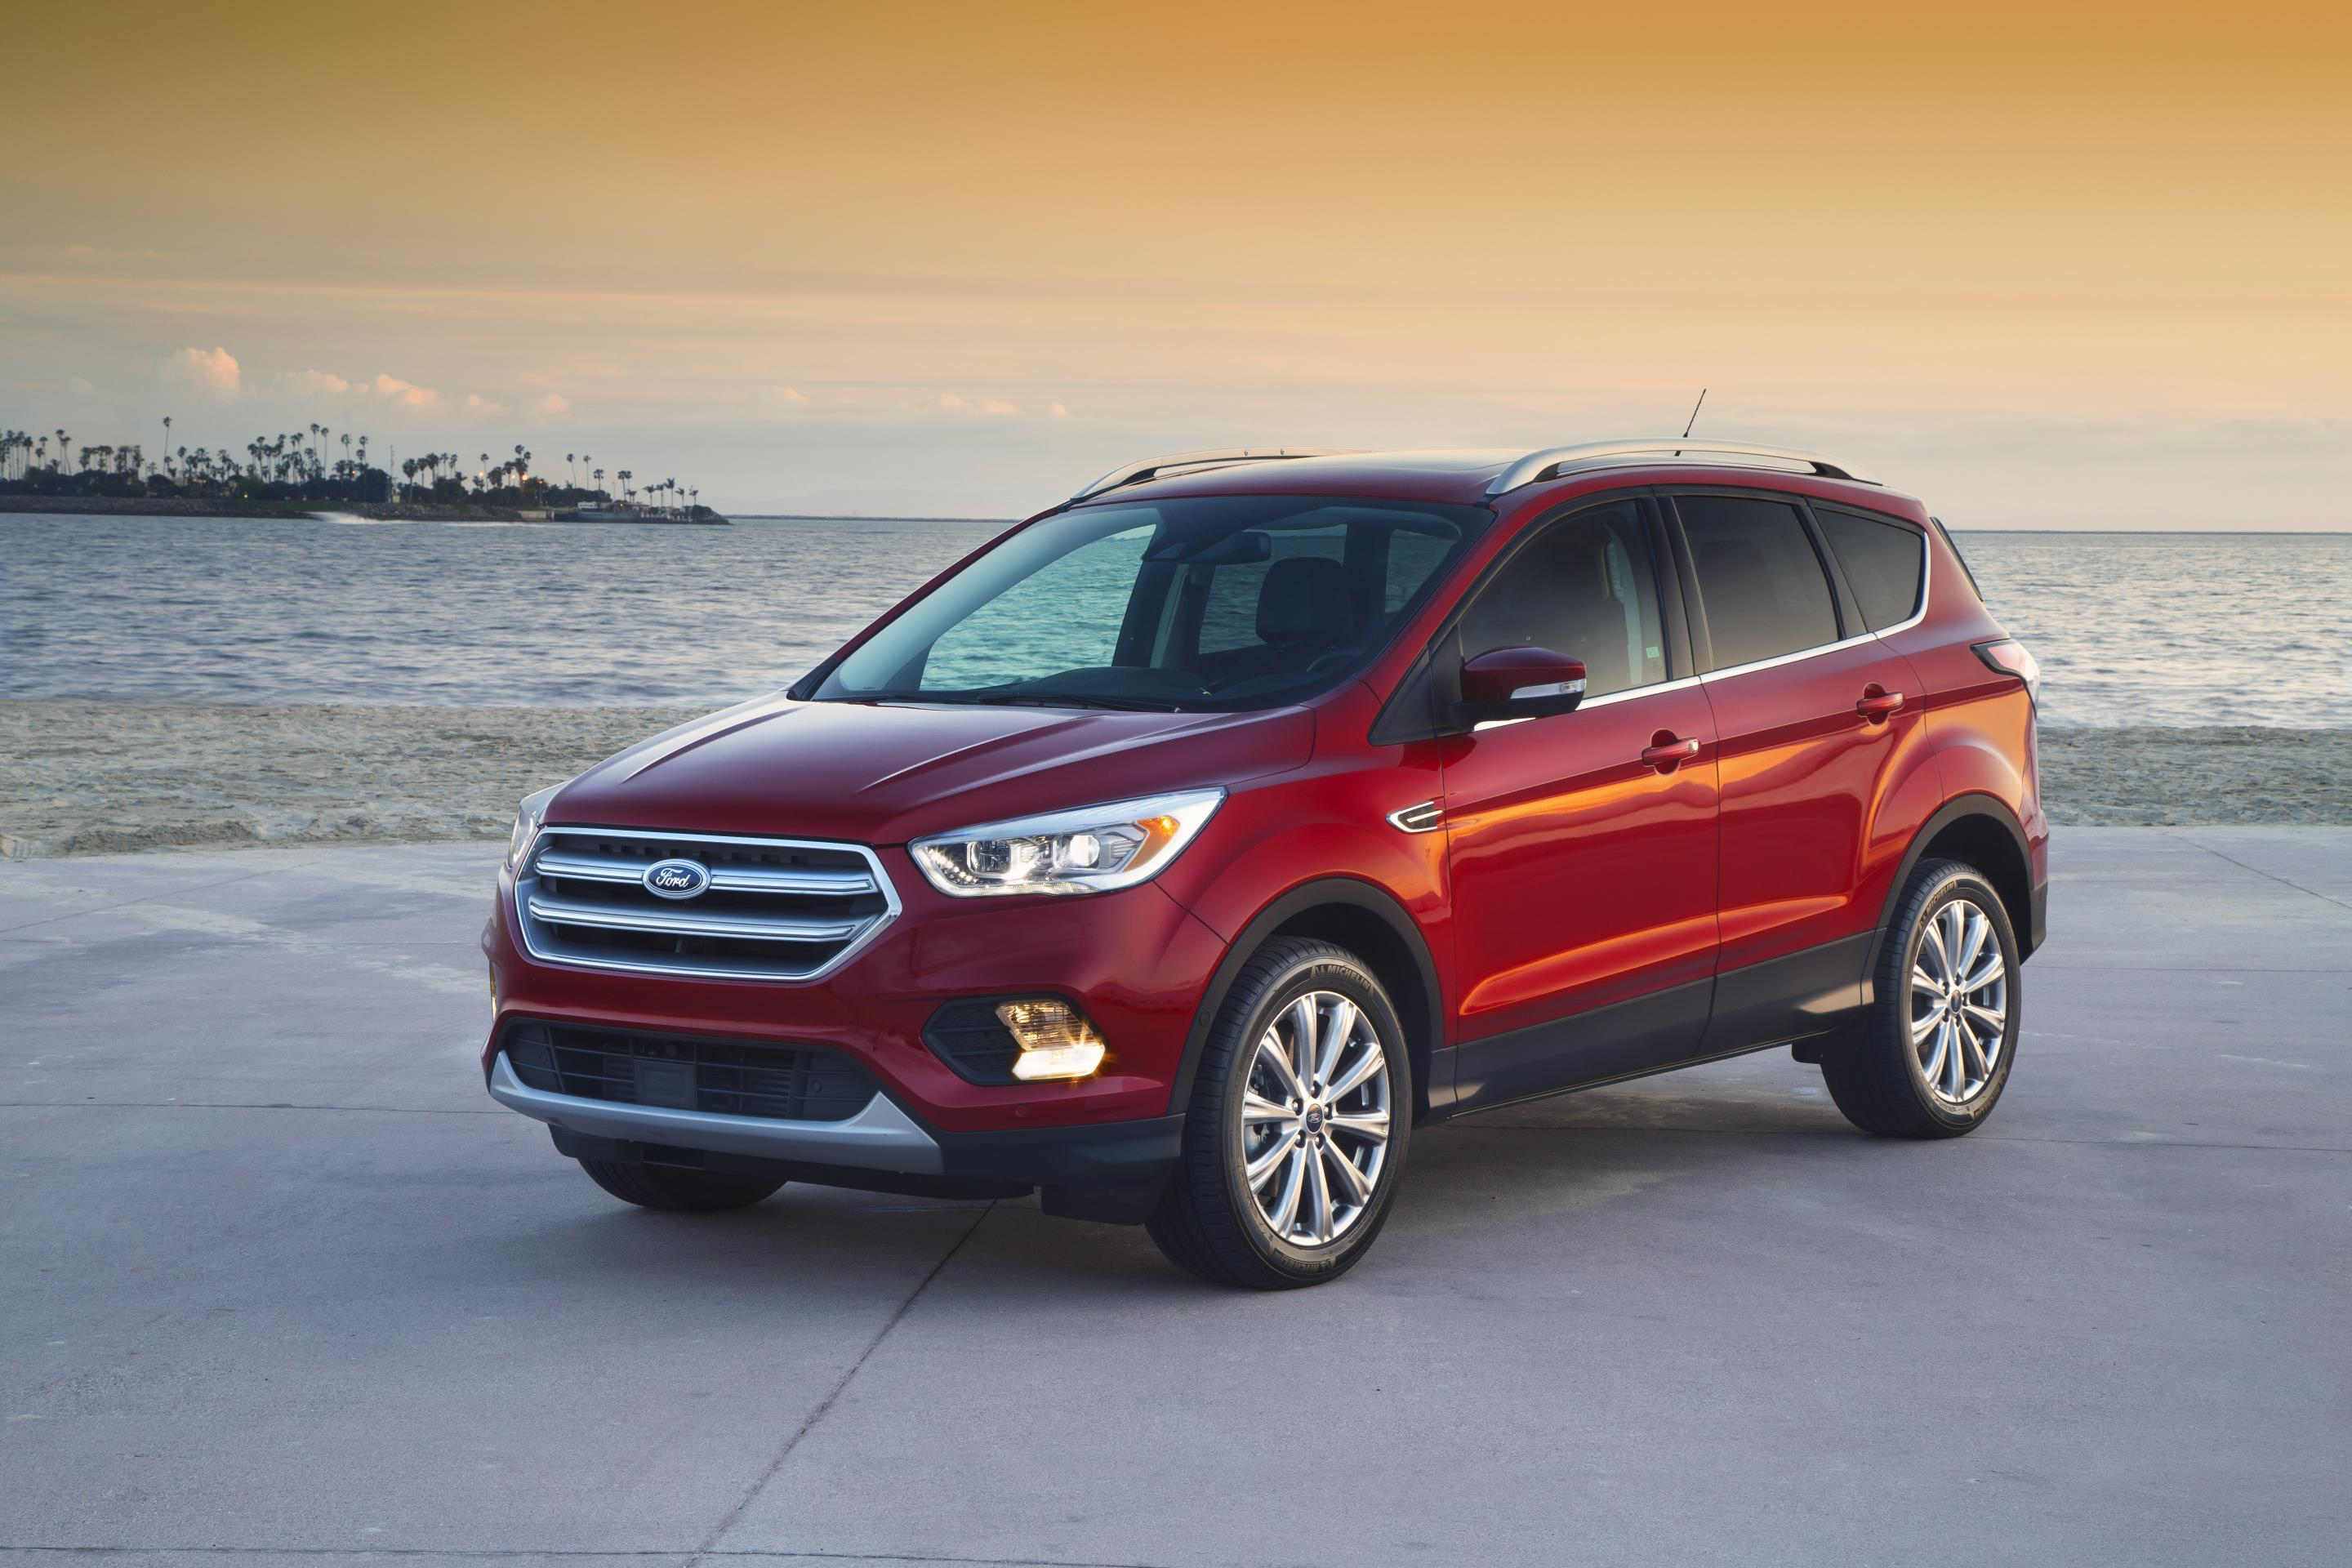 New ford escape brings to market available fordpass with sync connect allowing drivers to lock unlock and locate their vehicle and to schedule remote